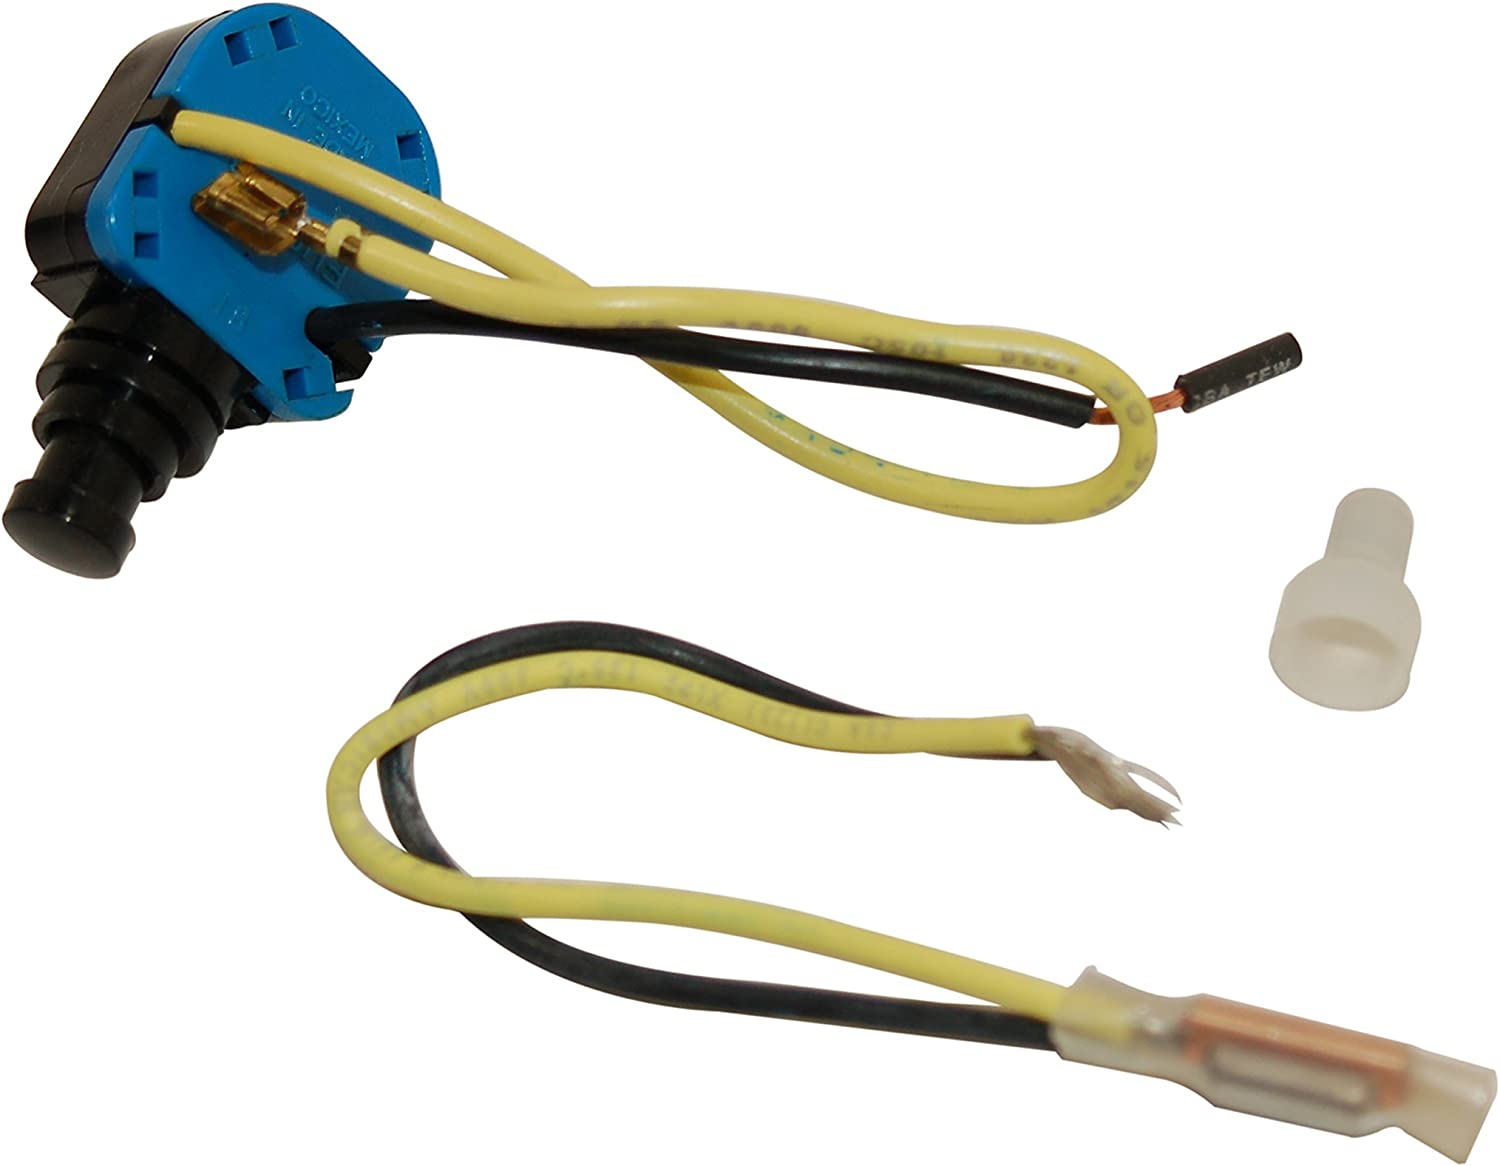 Electrolux Vacuum Cleaner Switch Assembly. Genuine part number 345836001